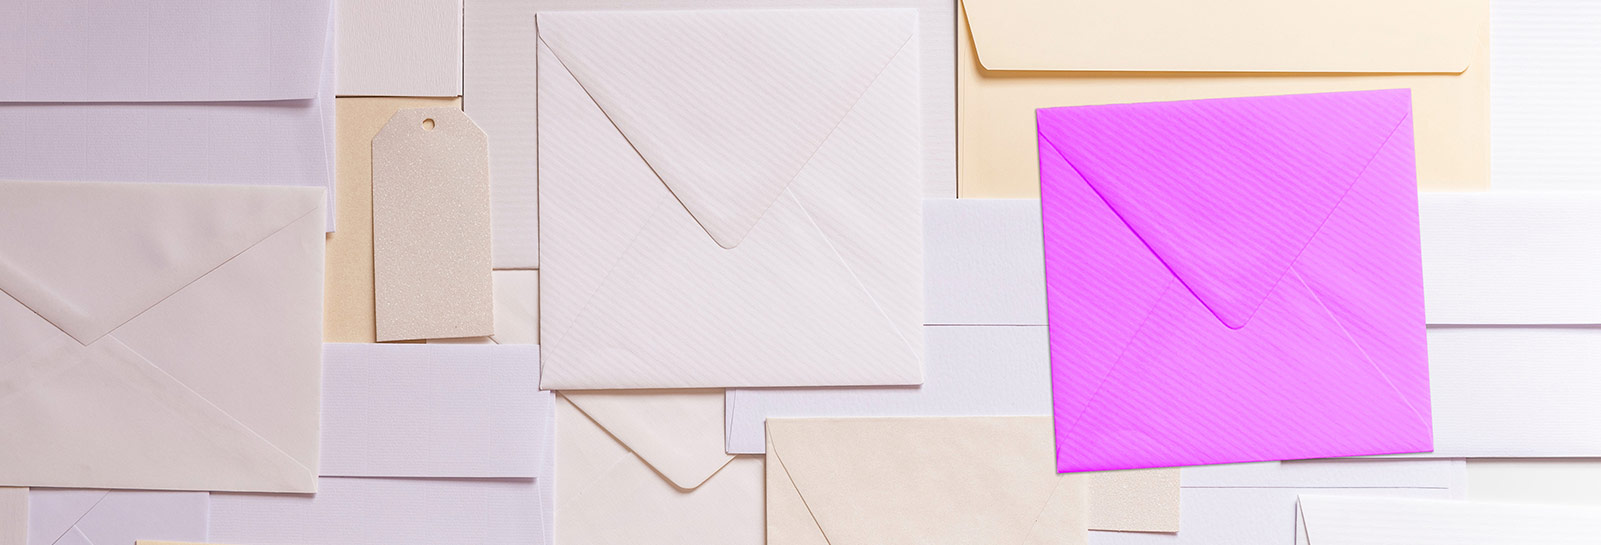 top view of a lot of envelopes